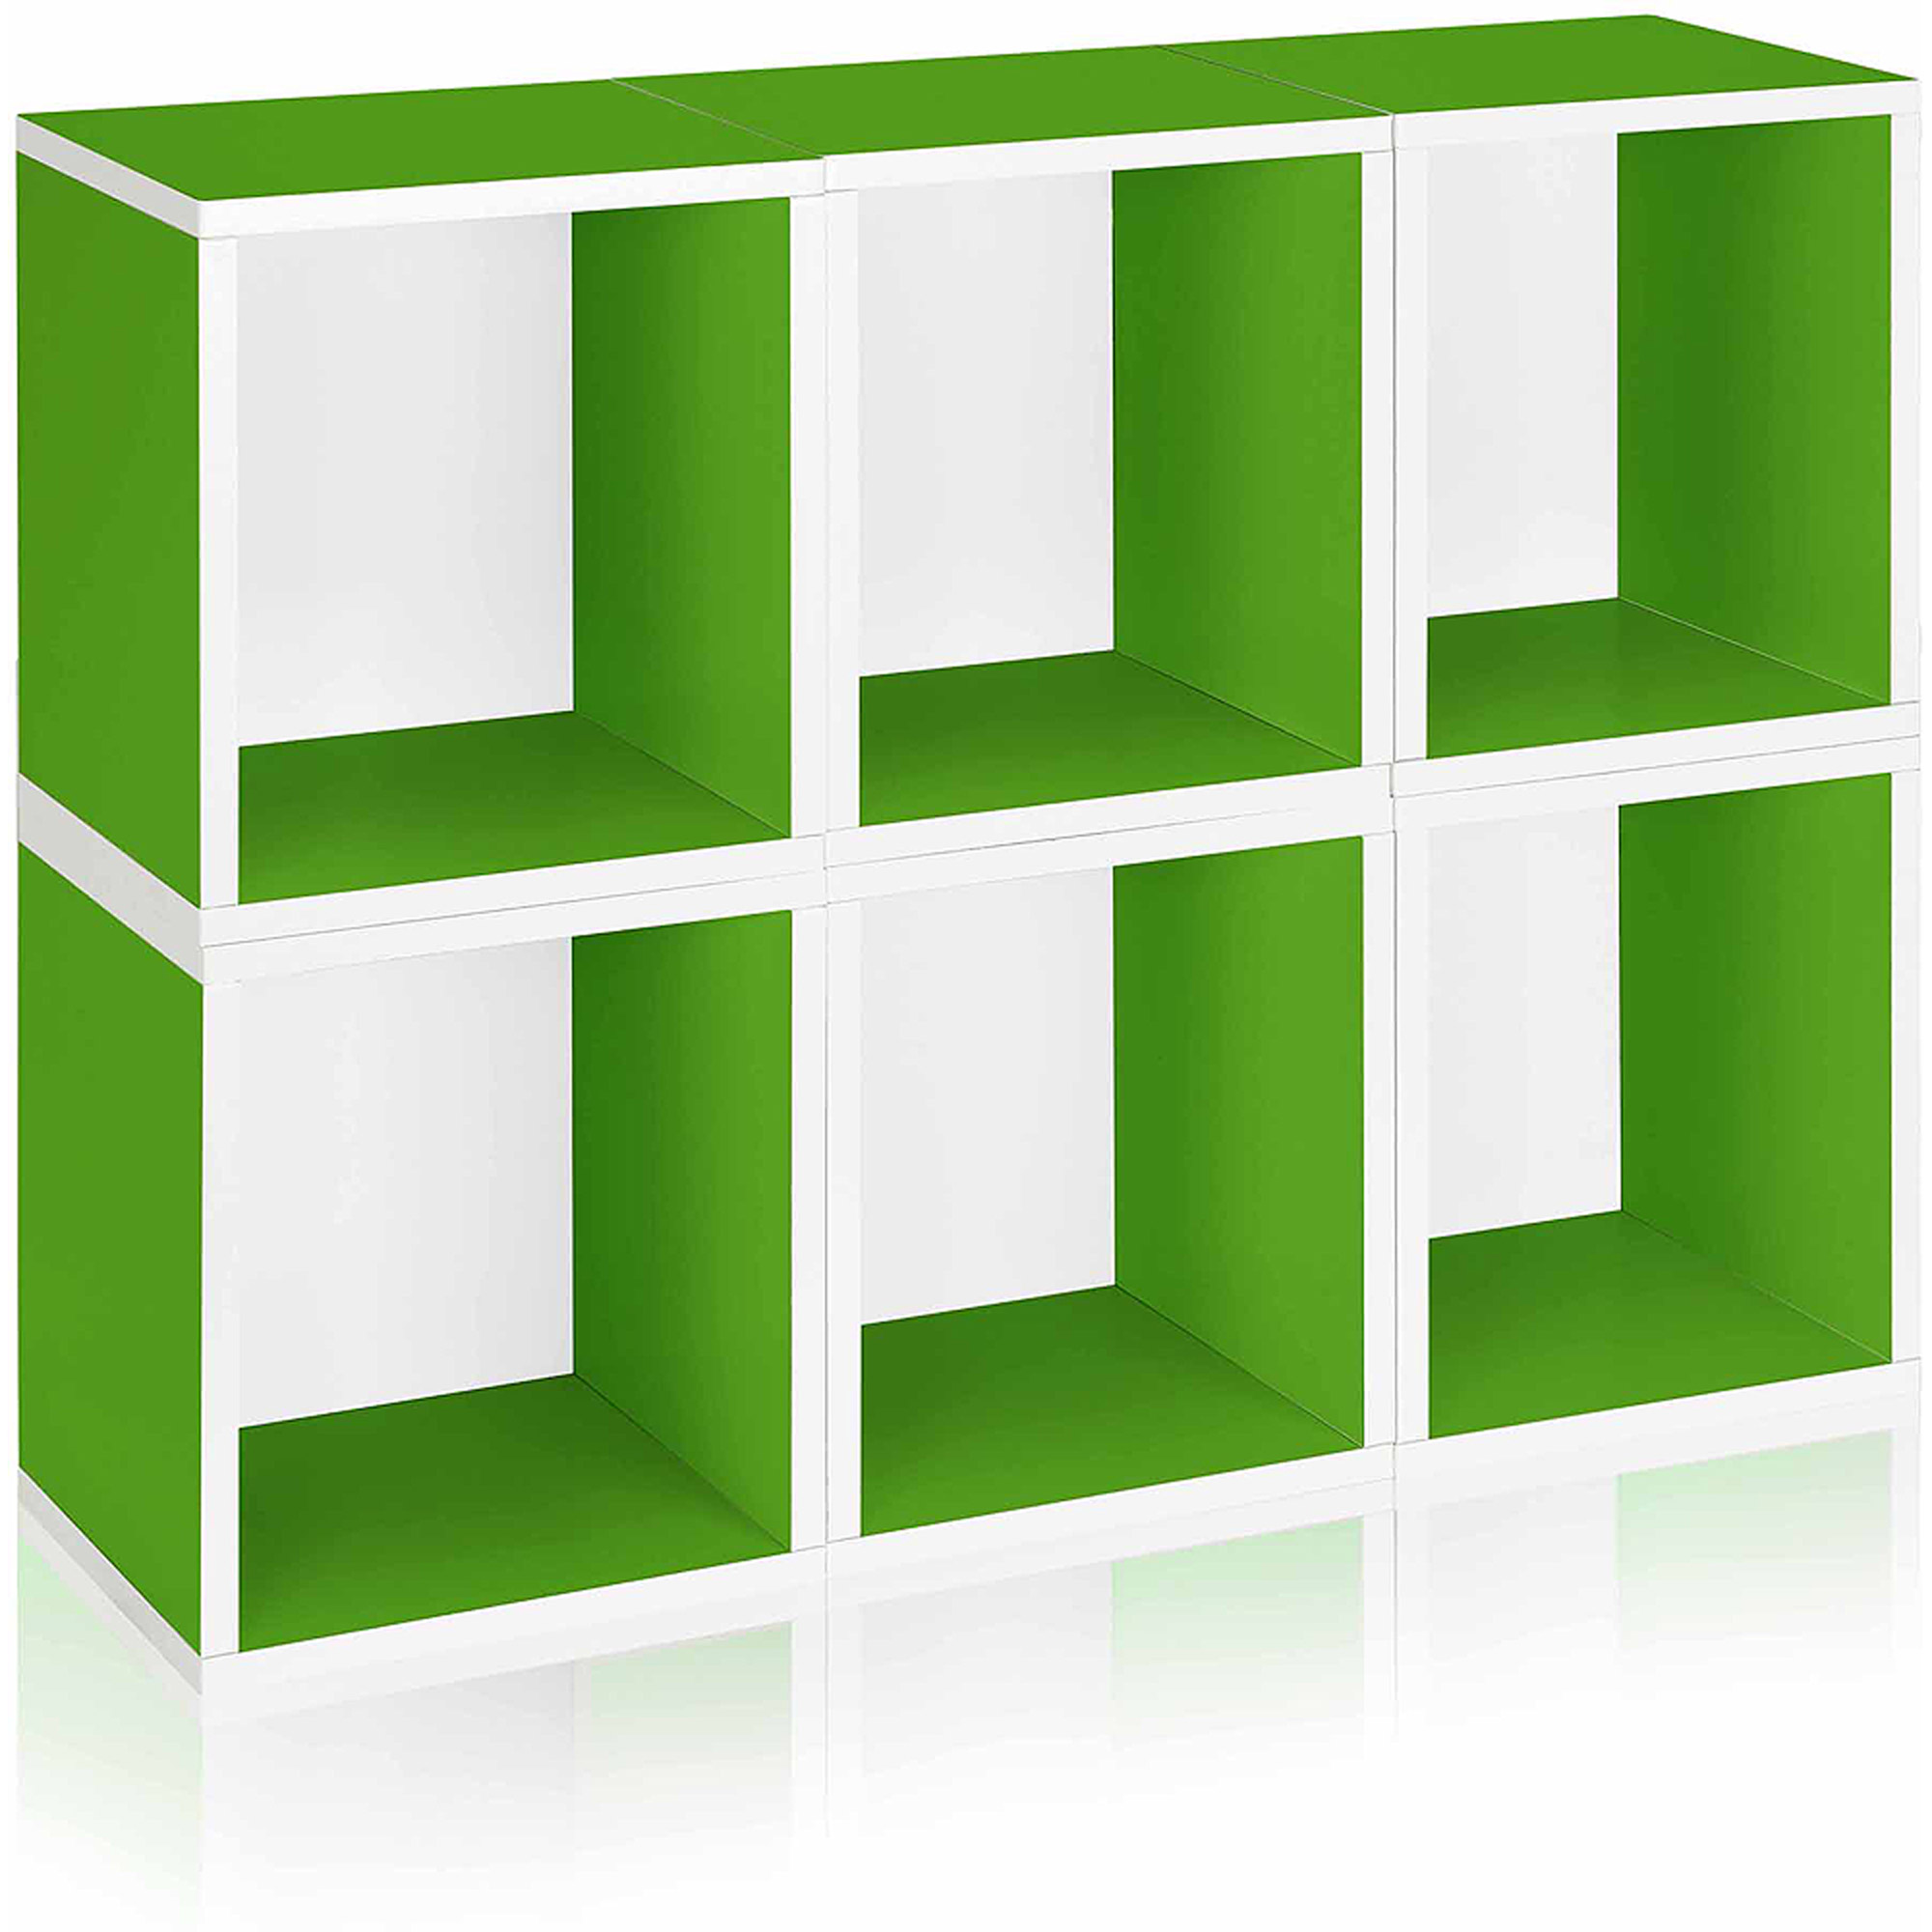 Way Basics Eco Stackable Modular Storage Cubes Plus, Green, 6-Pack